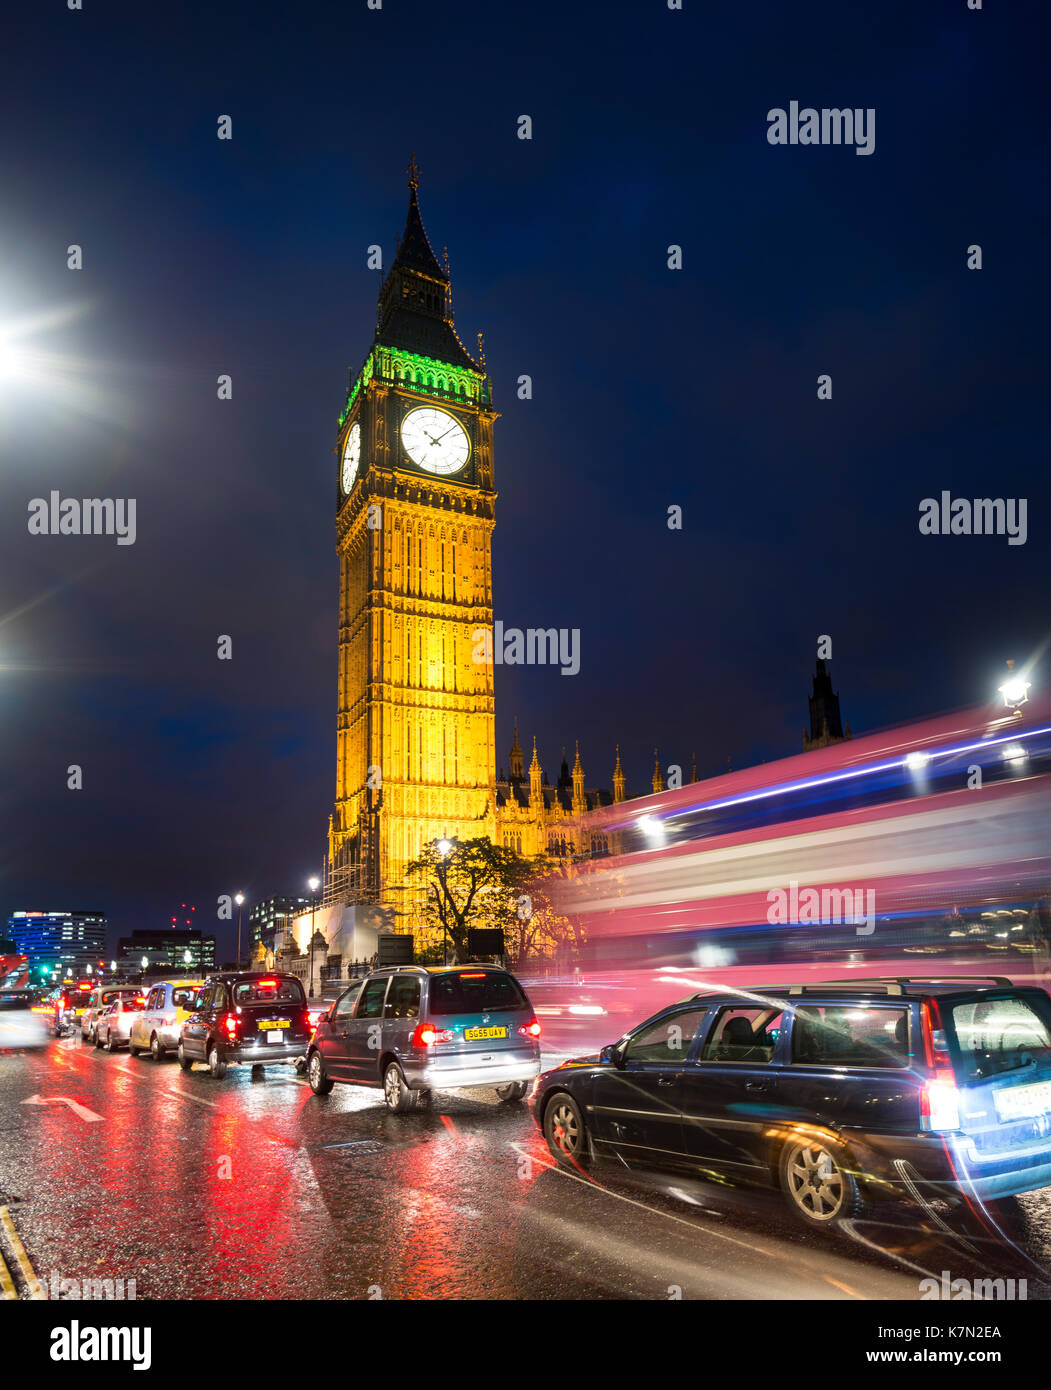 Big Ben, Houses of Parliament, Light Traces, Night Scene, City of Westminster, London, Region London, England, Great Britain - Stock Image